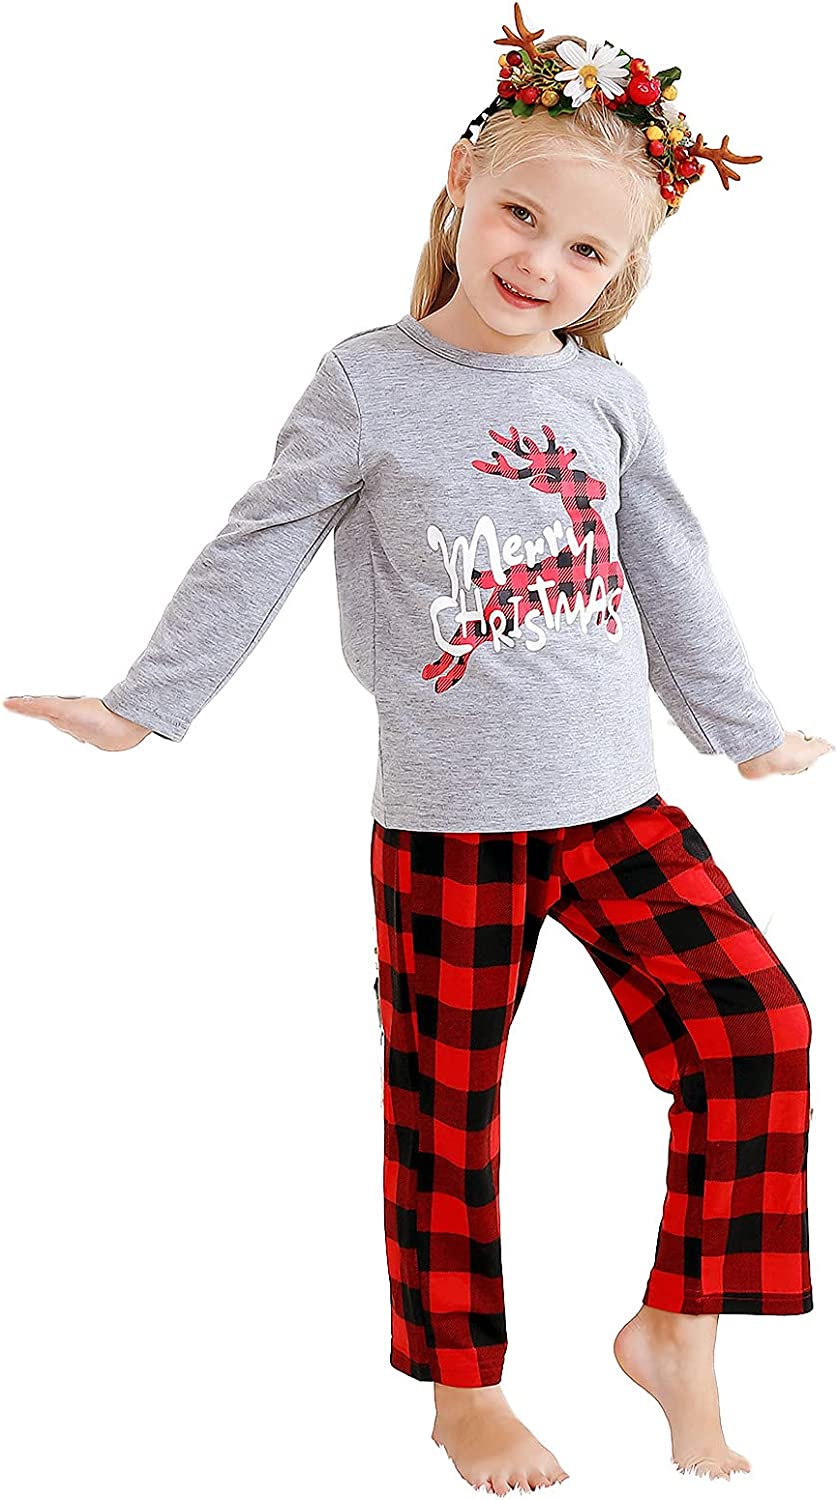 Christmas Family Matching Suits for Baby,Family Party Clothes Matching Sets for Kids